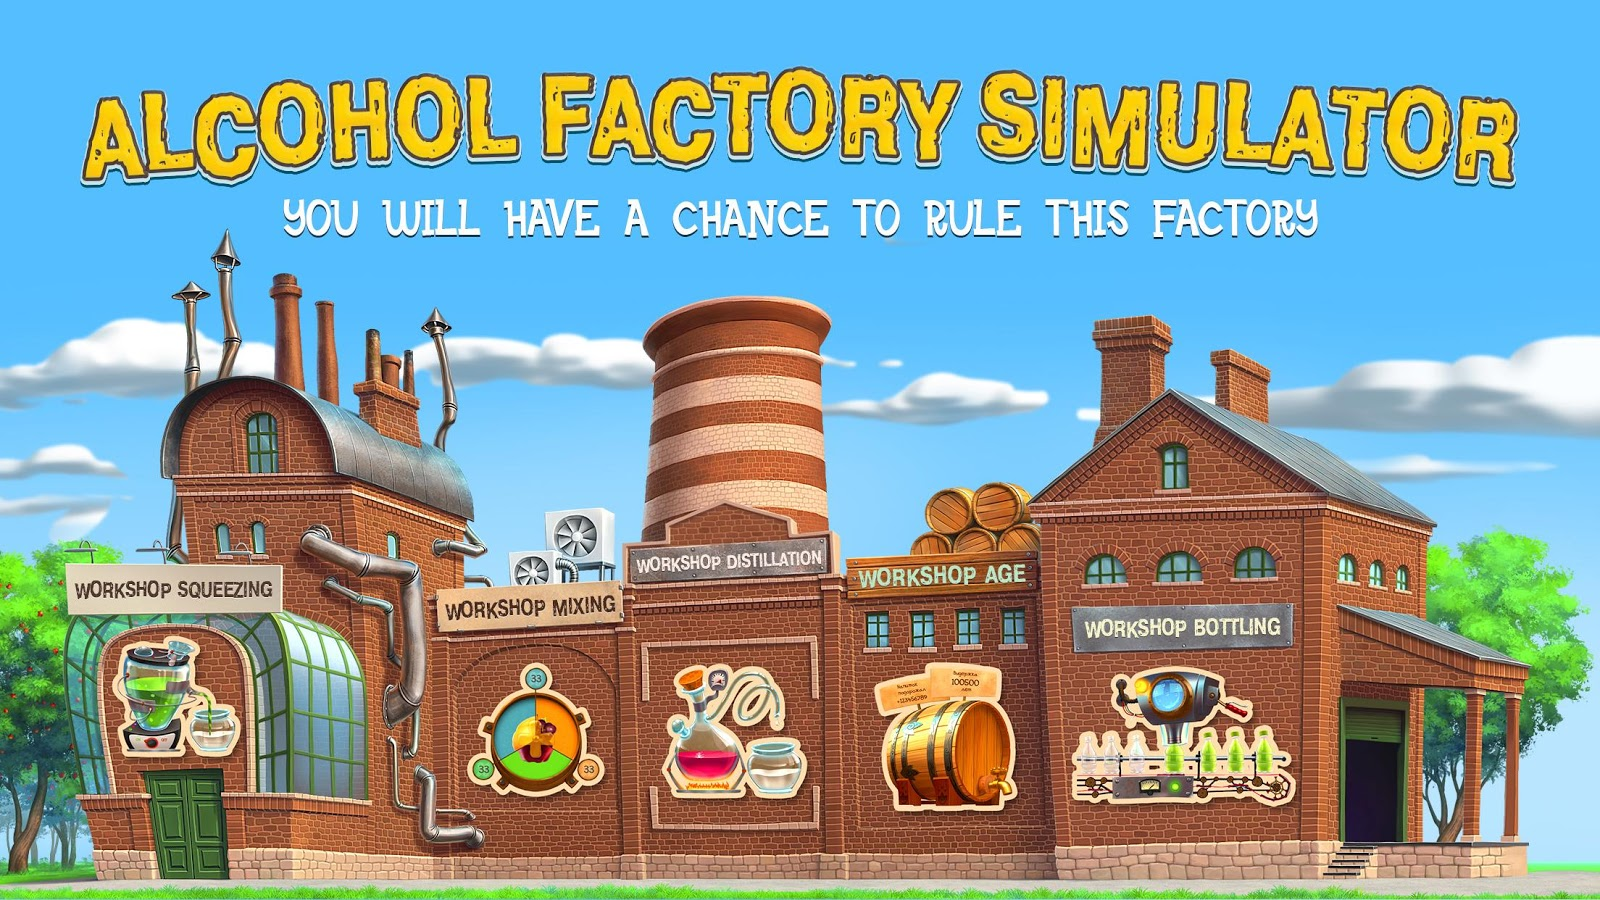 Alcohol Factory Simulator Screenshot